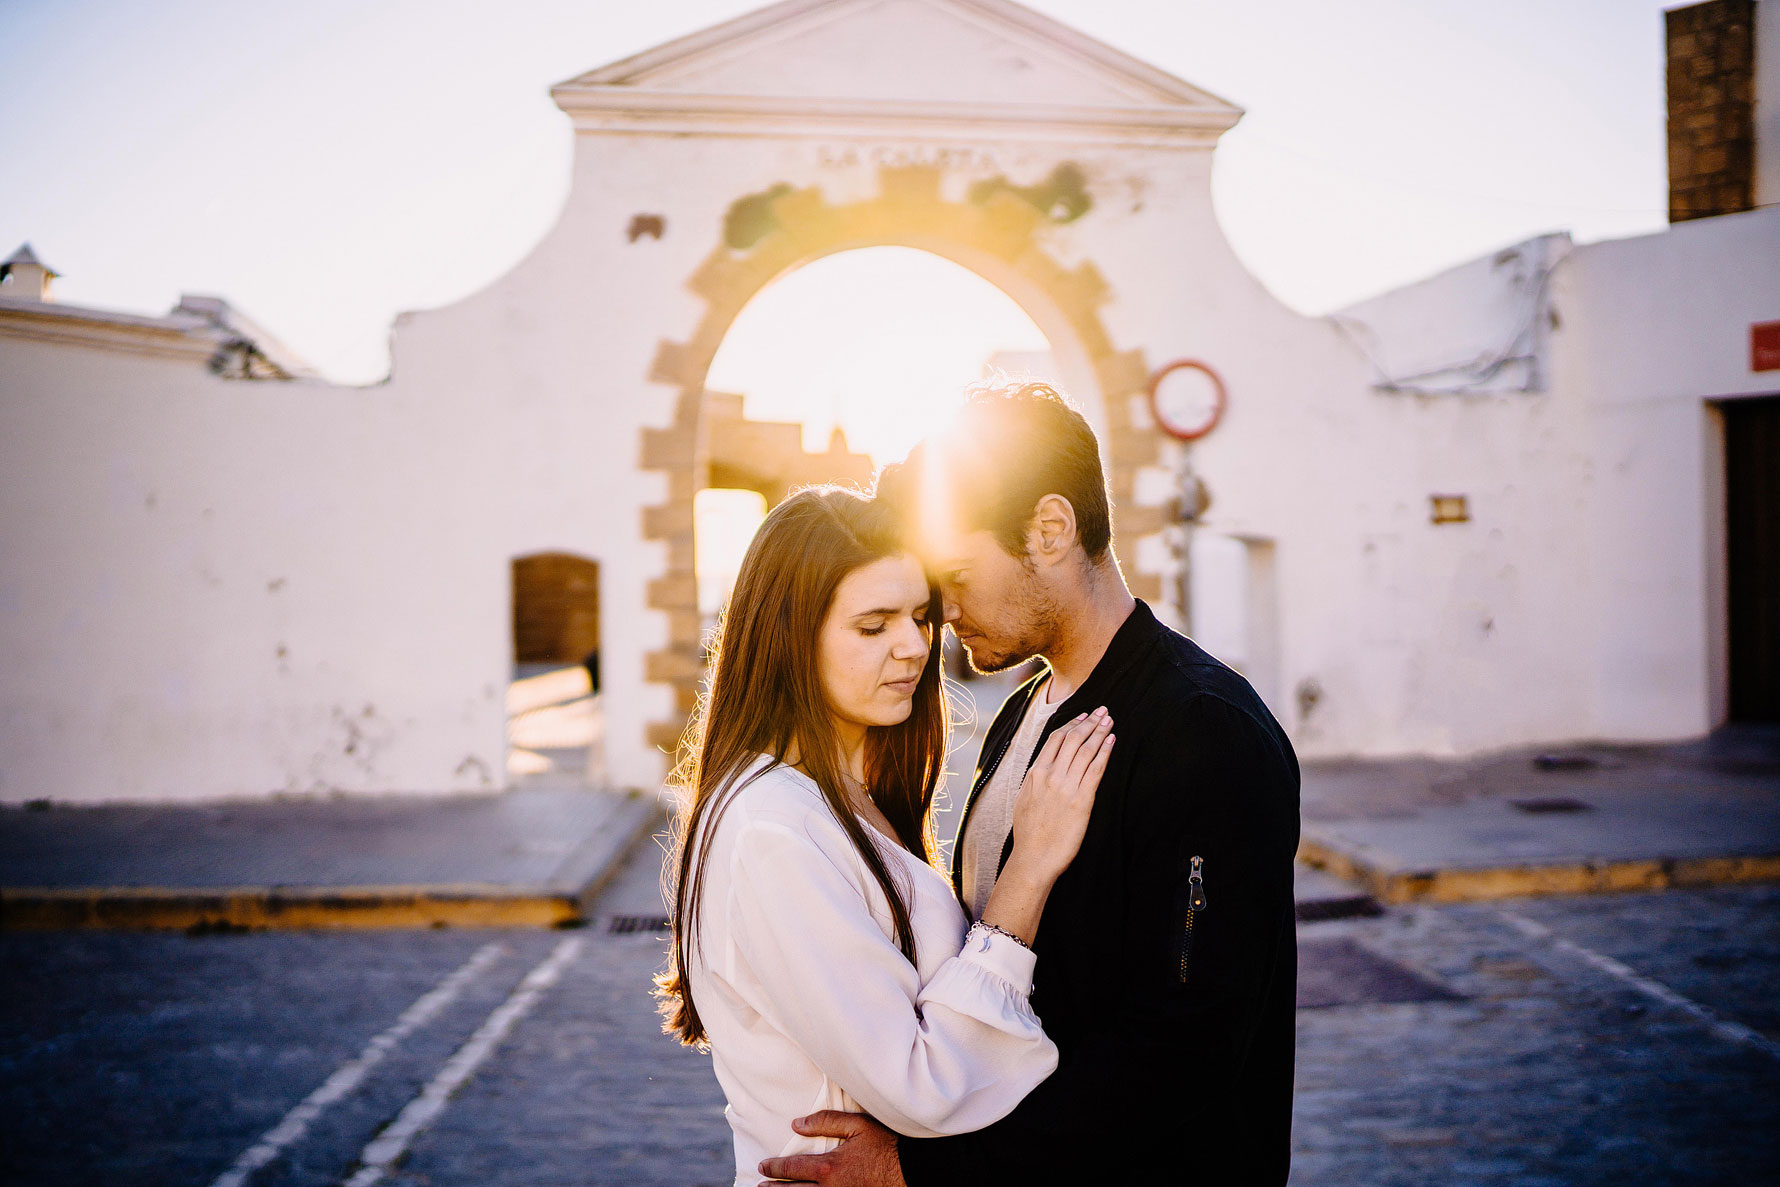 spain engagement photography by Elliot w patching